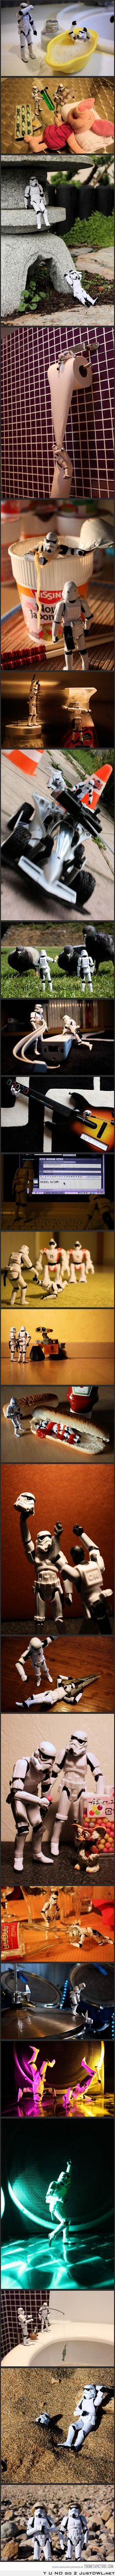 #Funny #Stormtroopers doing all type of things